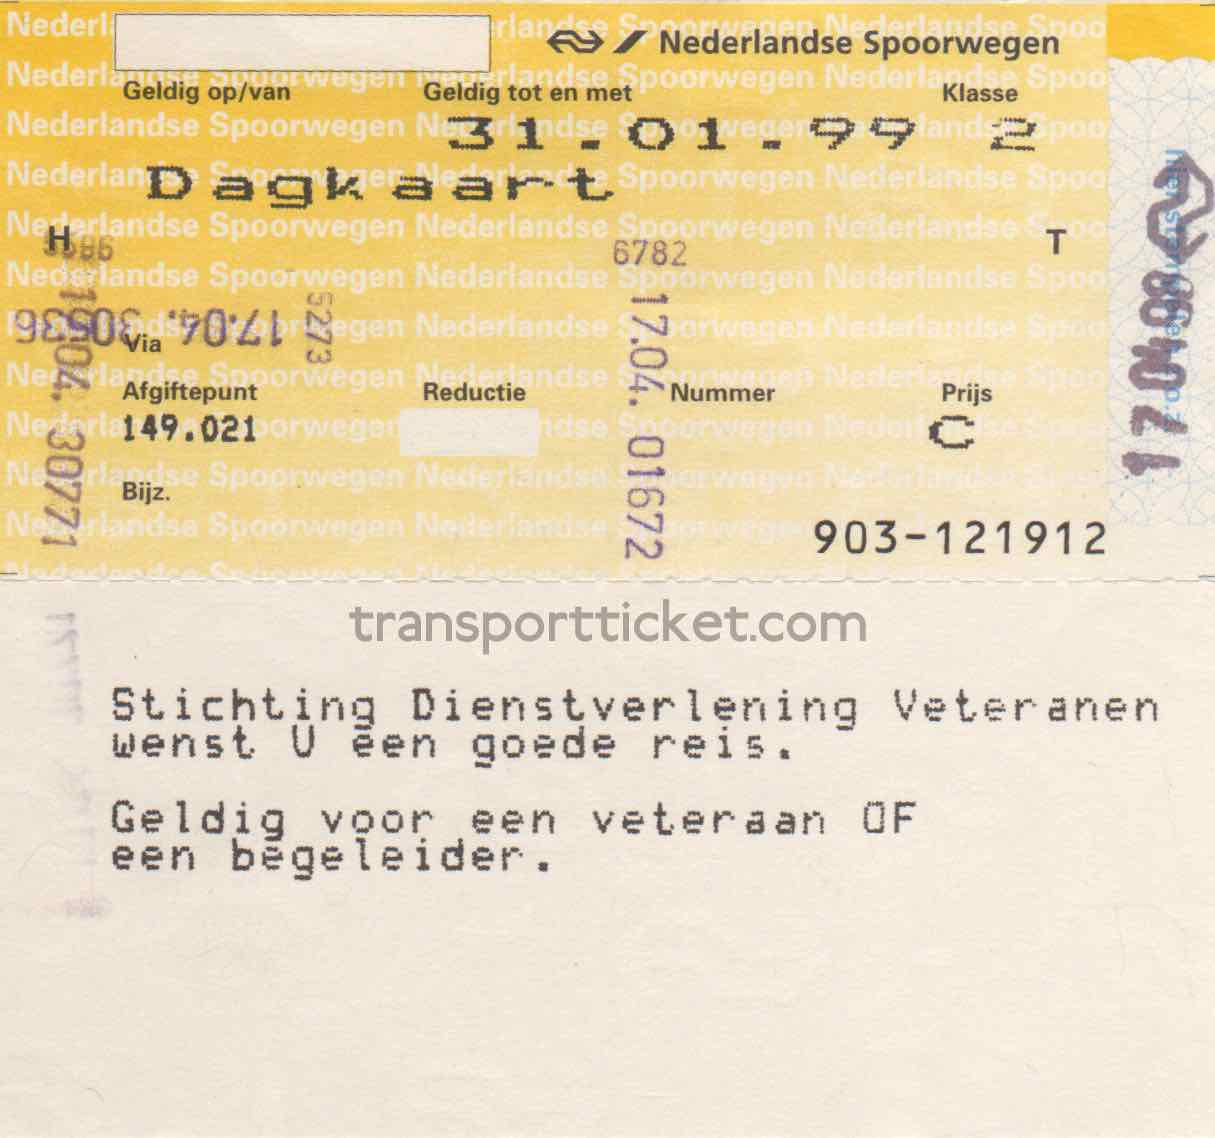 NS railway ticket for a veteran (1998)